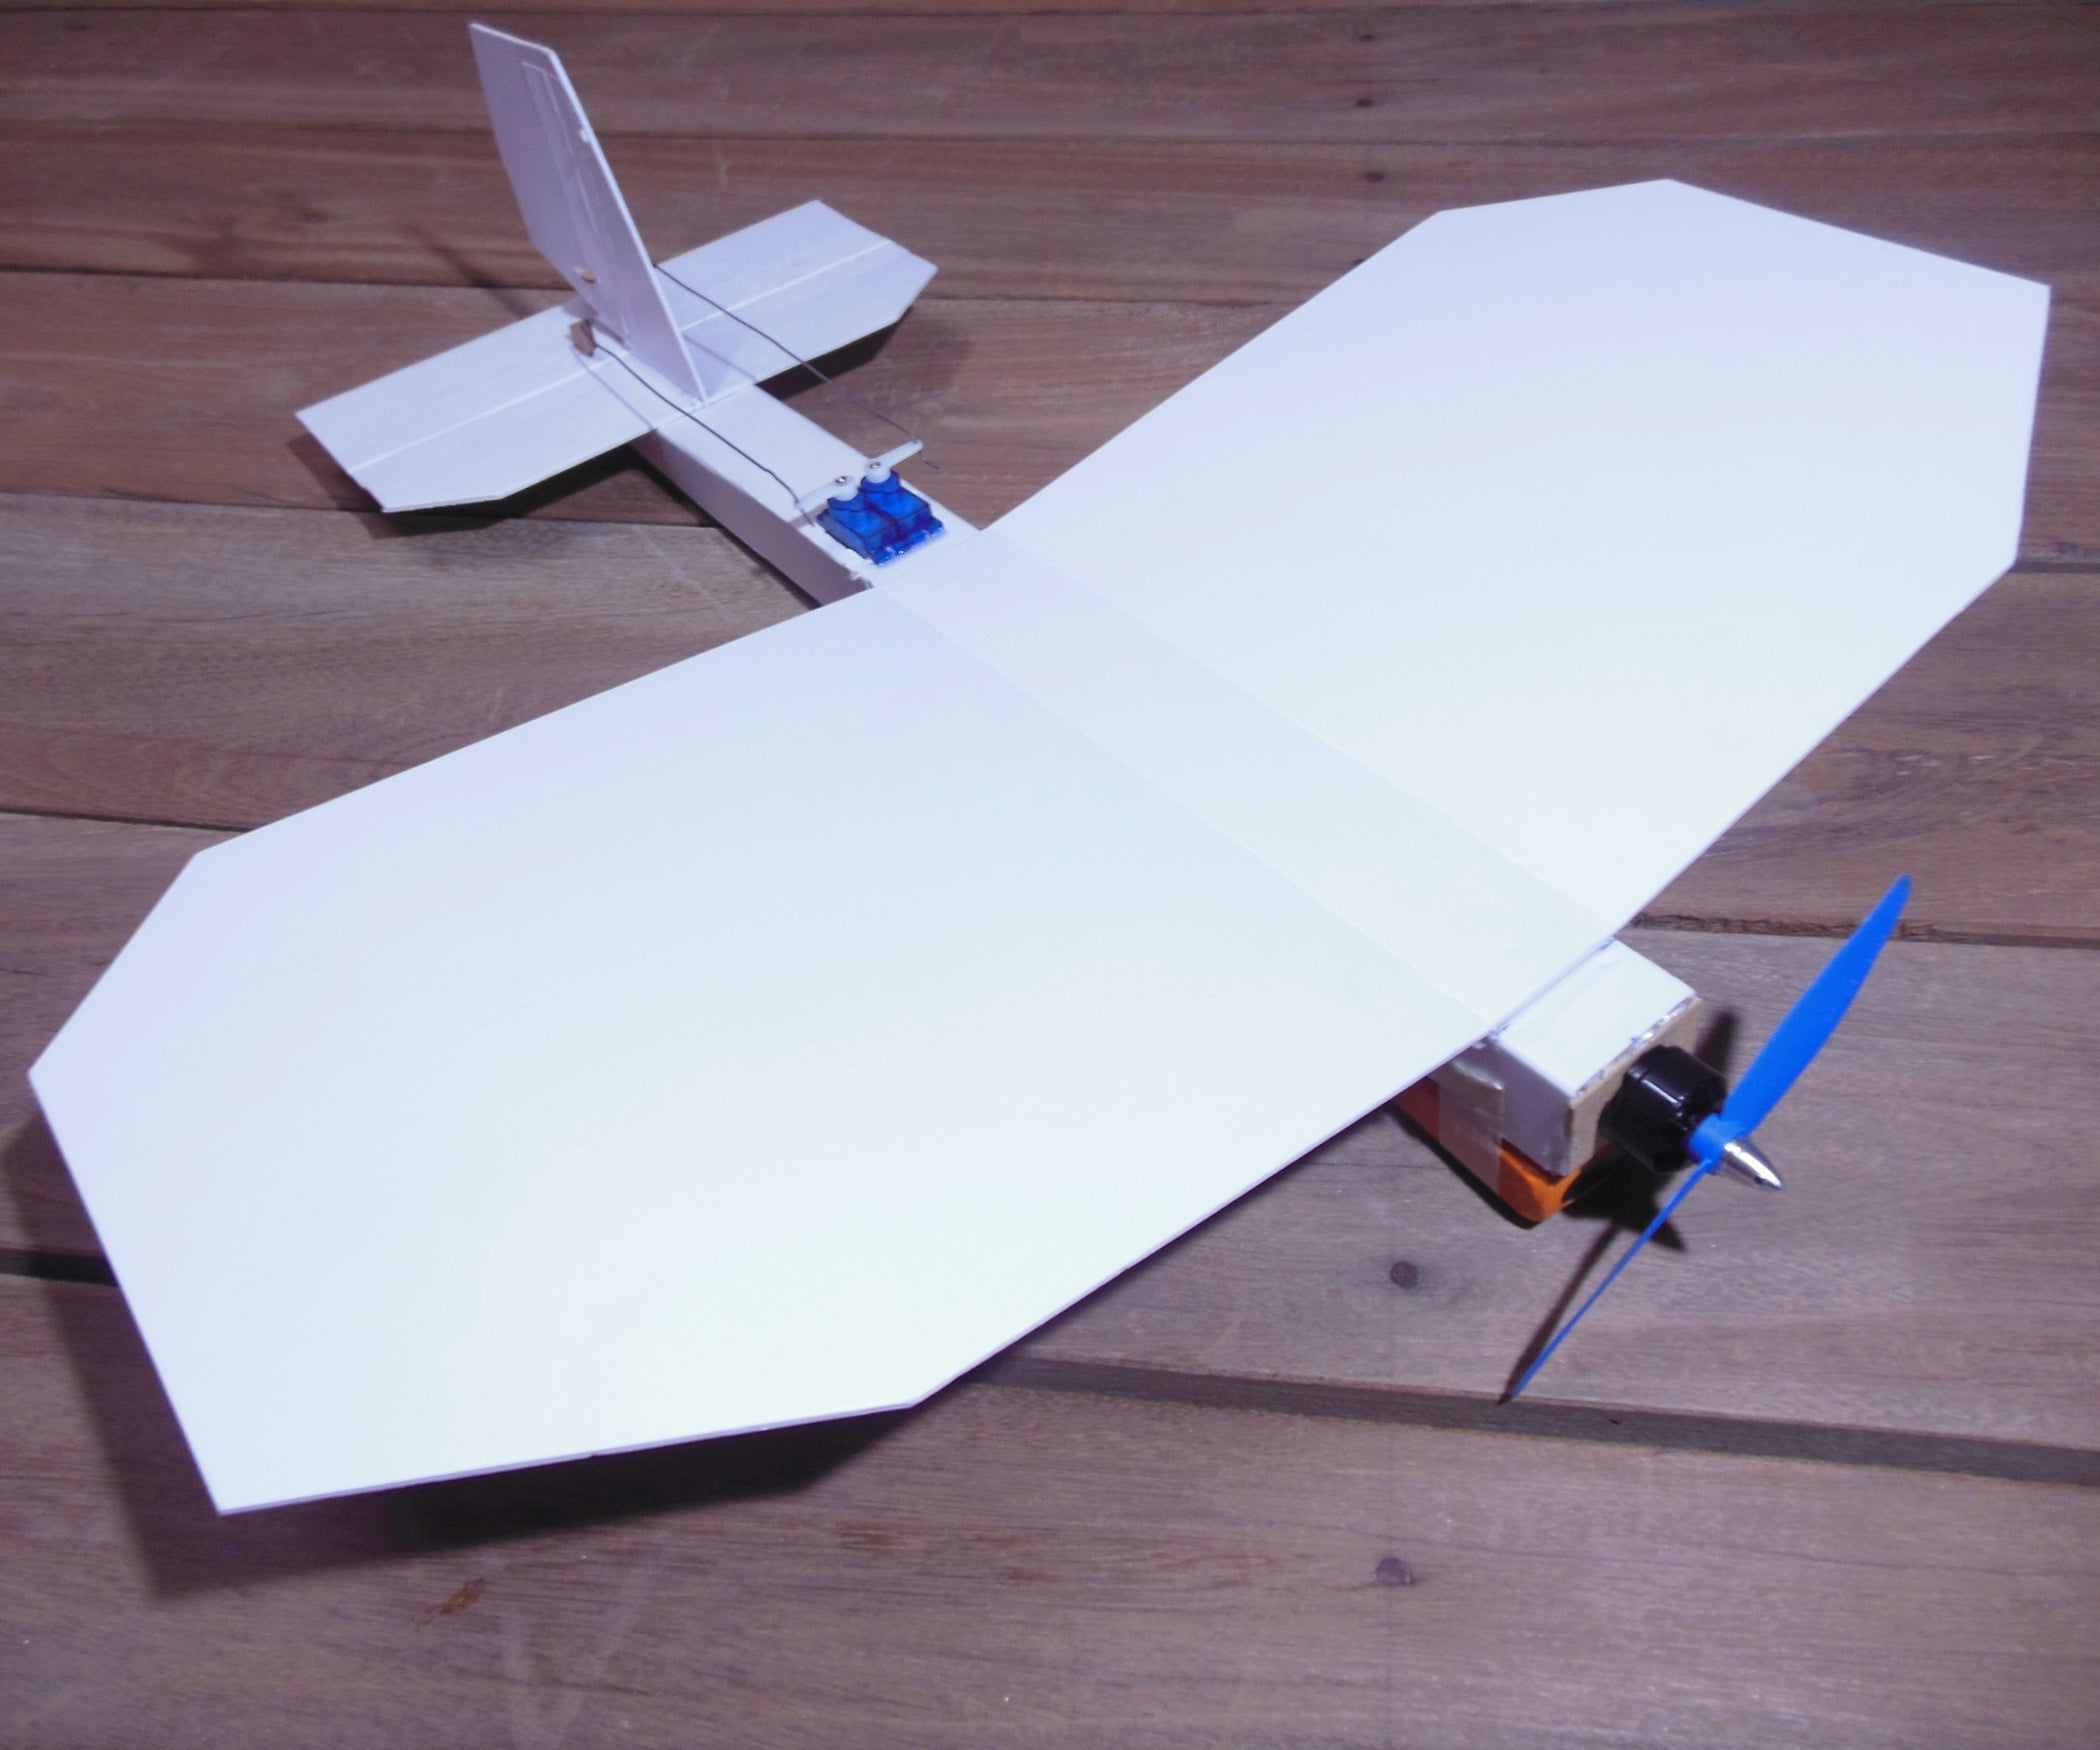 how to build your own remote control airplane